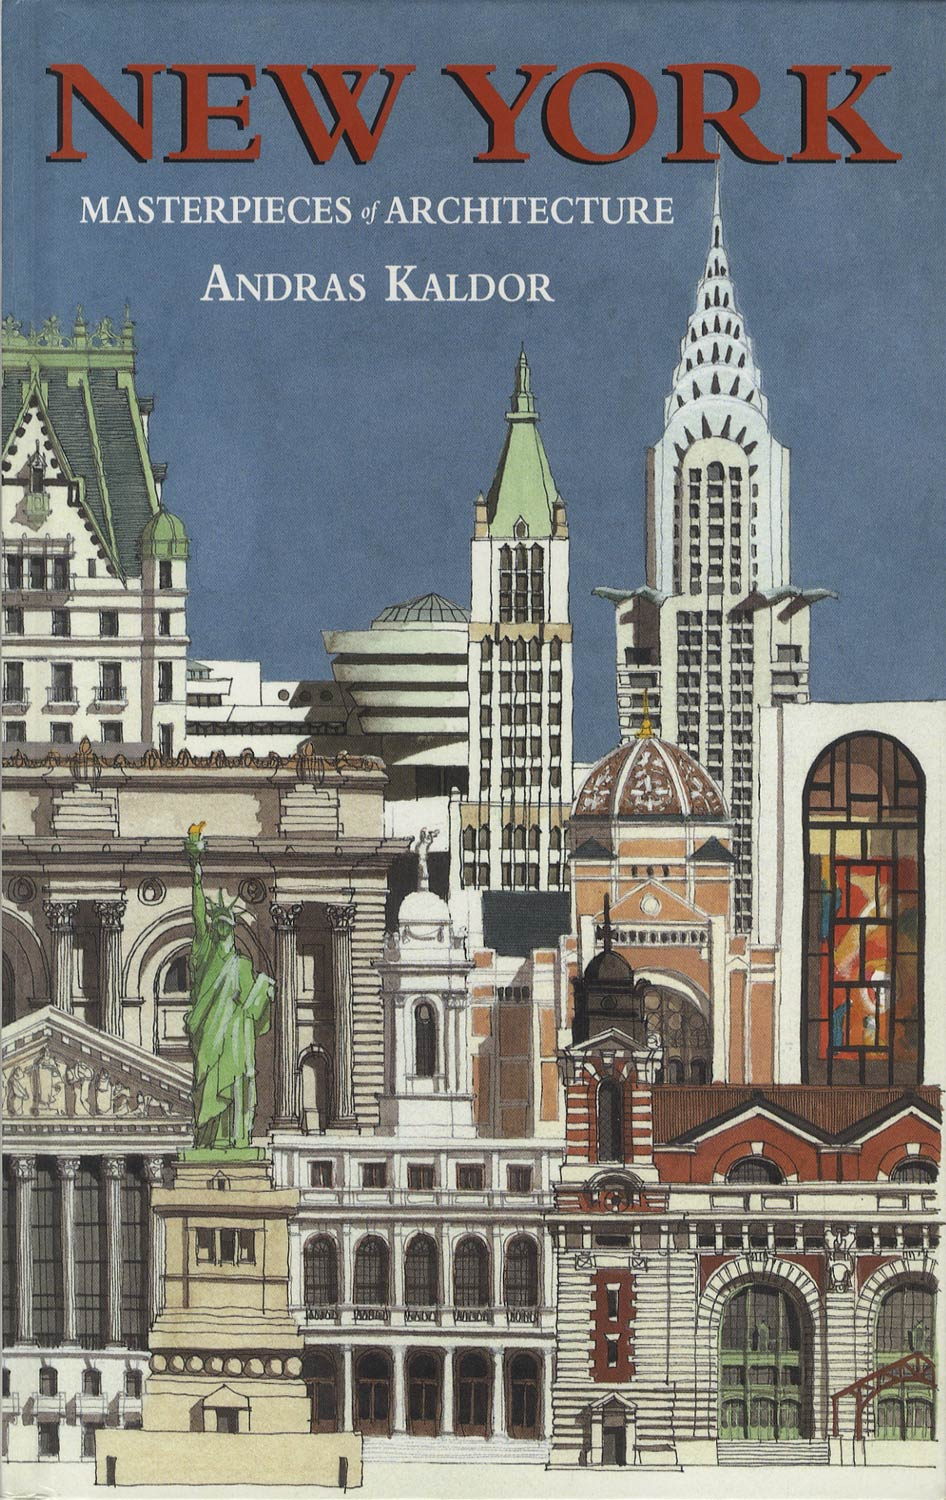 New York Masterpieces of Architecture